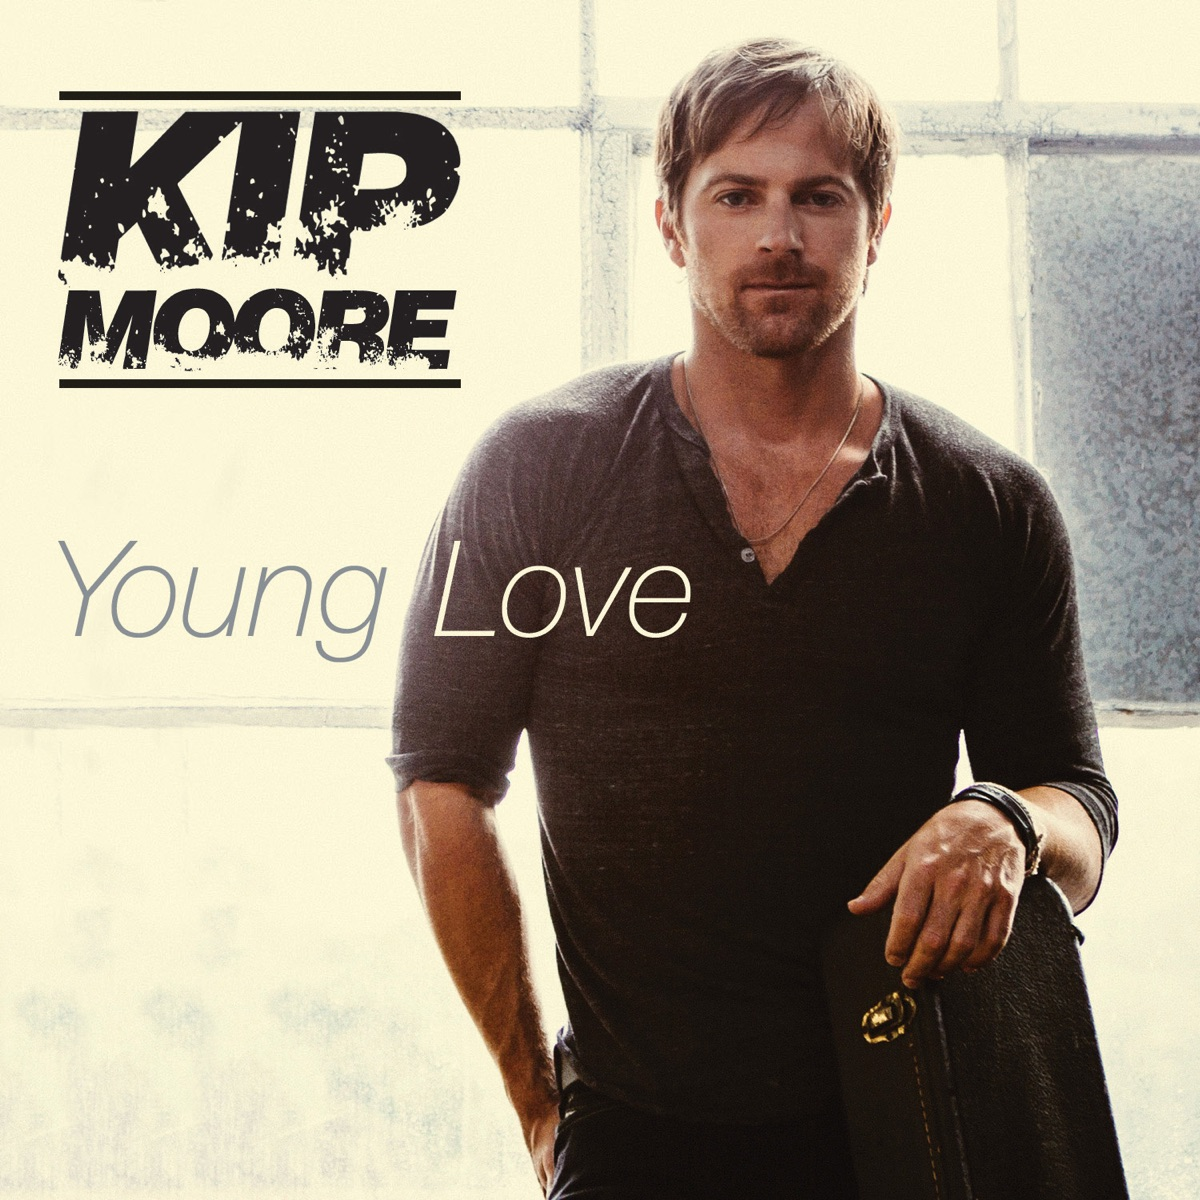 Young Love - Single Kip Moore CD cover